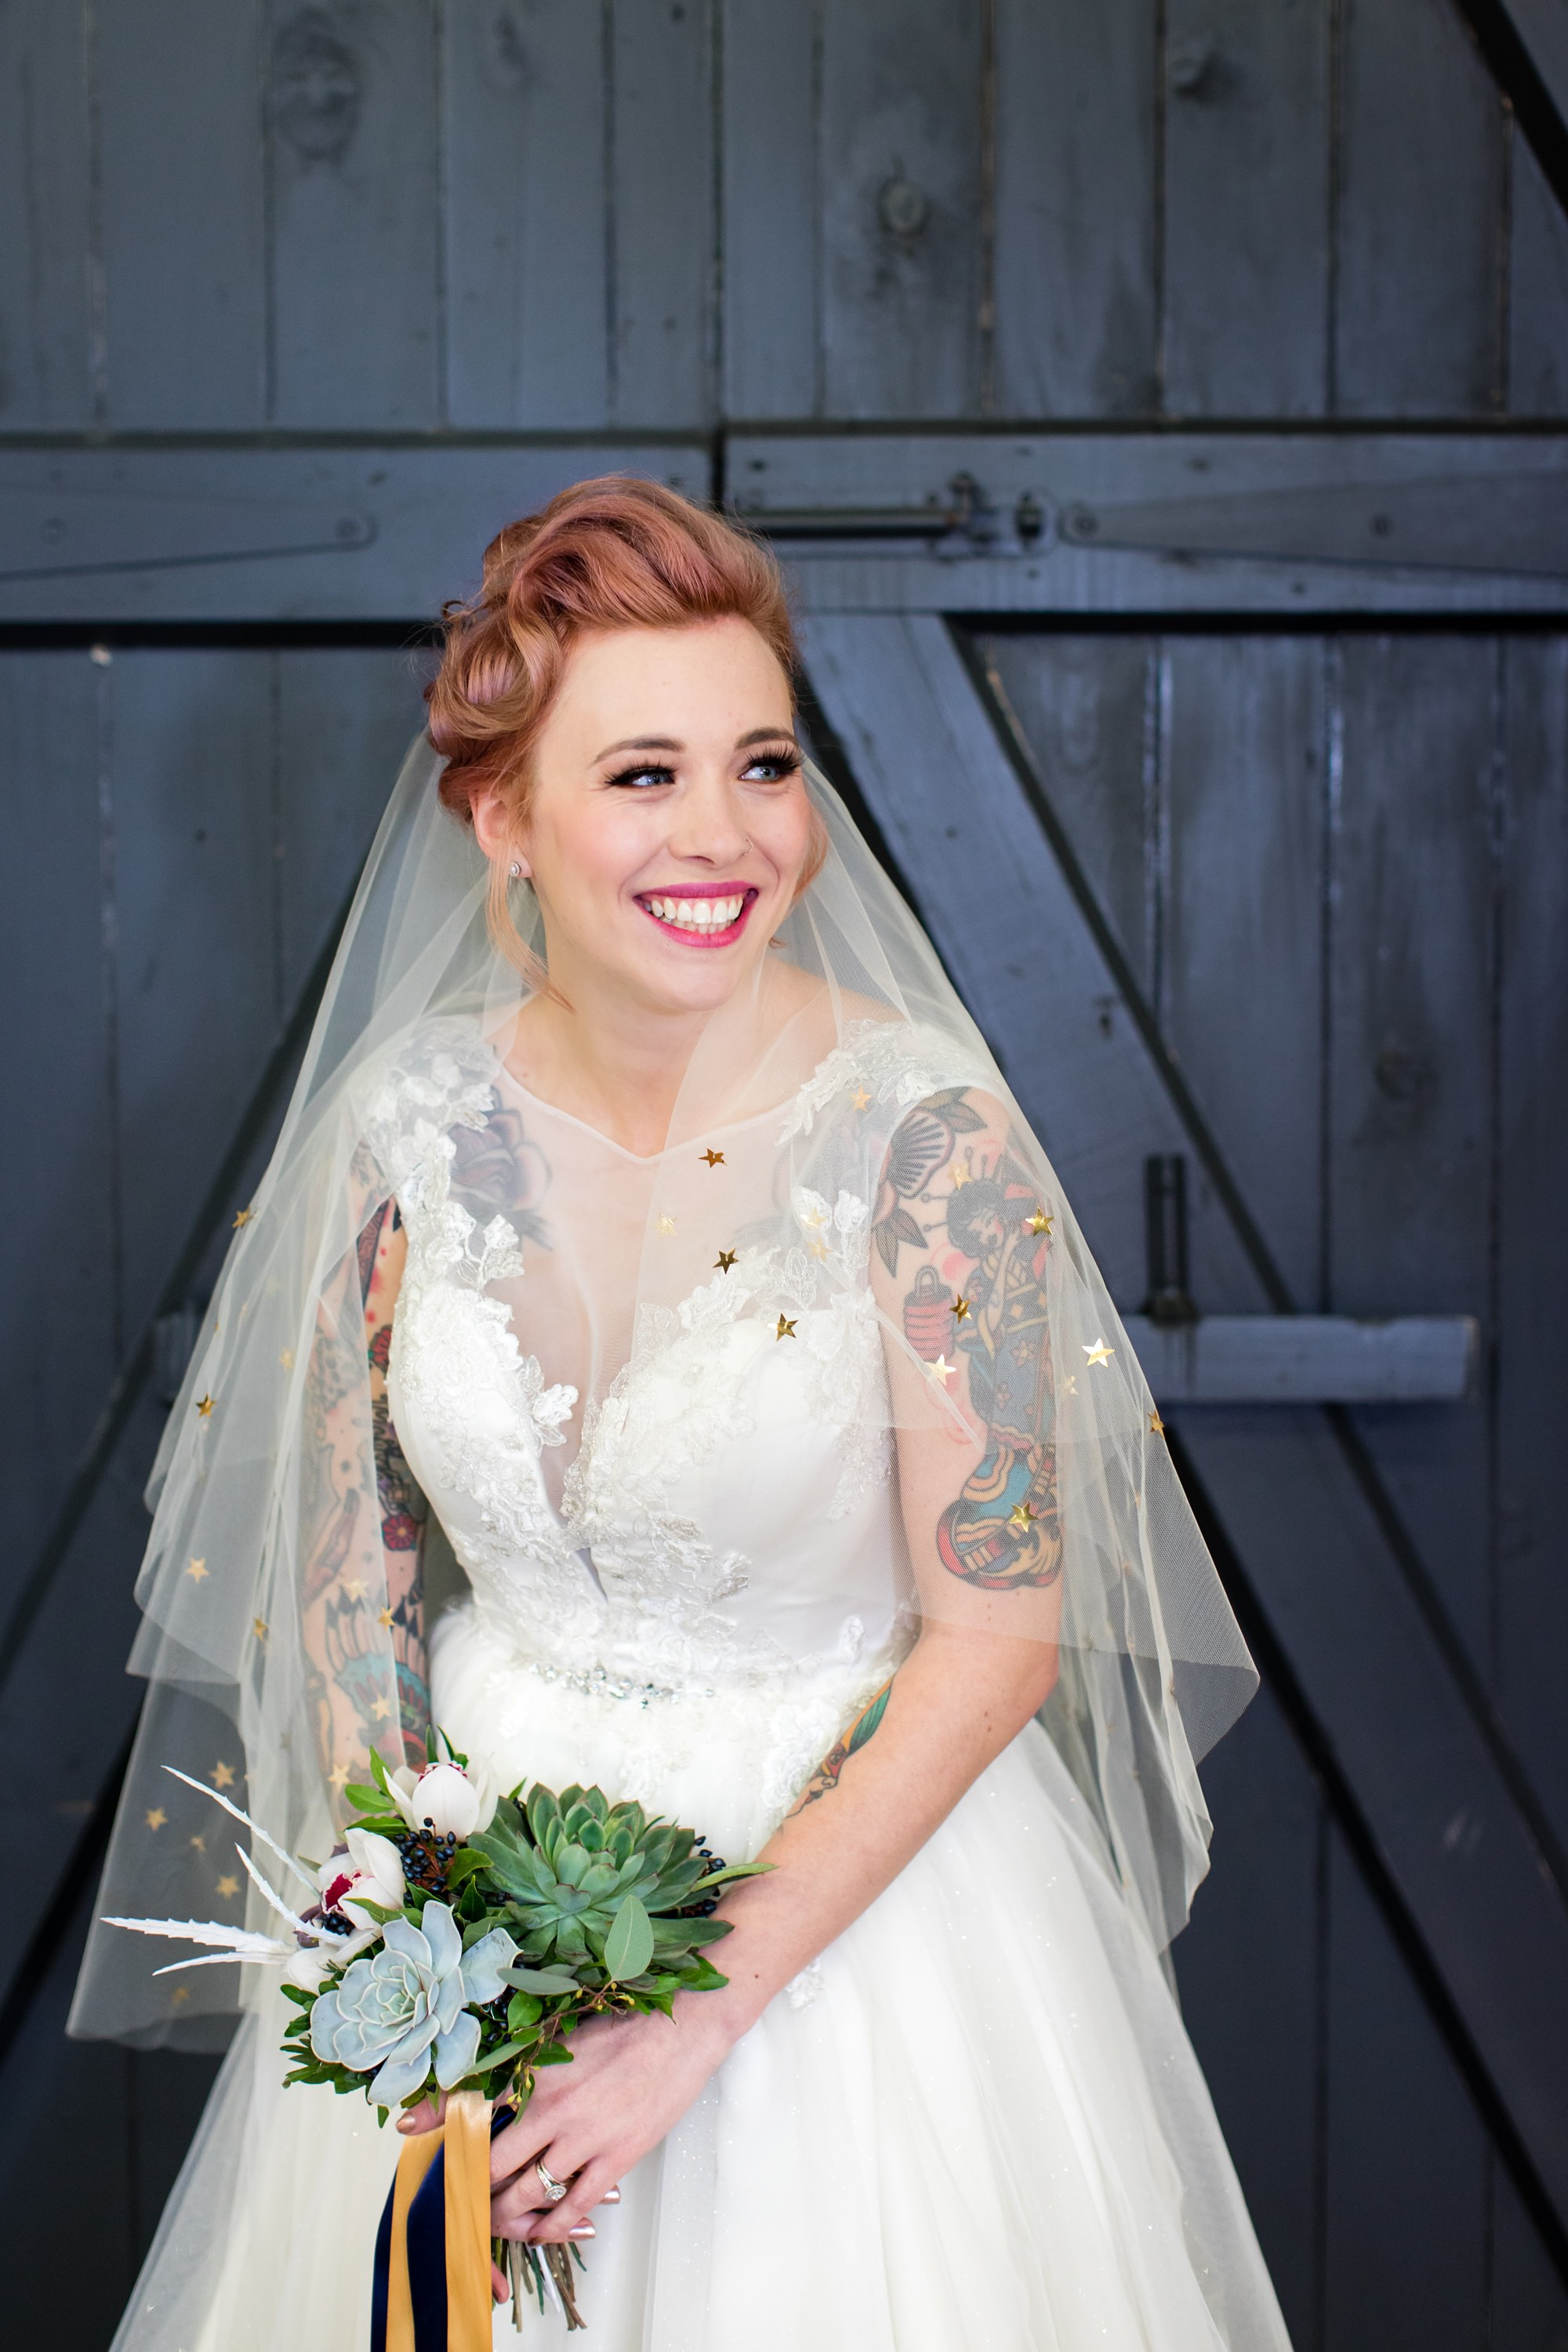 River Mills Ballroom Wedding Photography Tattooed bride wearing dress from Legend Bridal in front of grey blue door